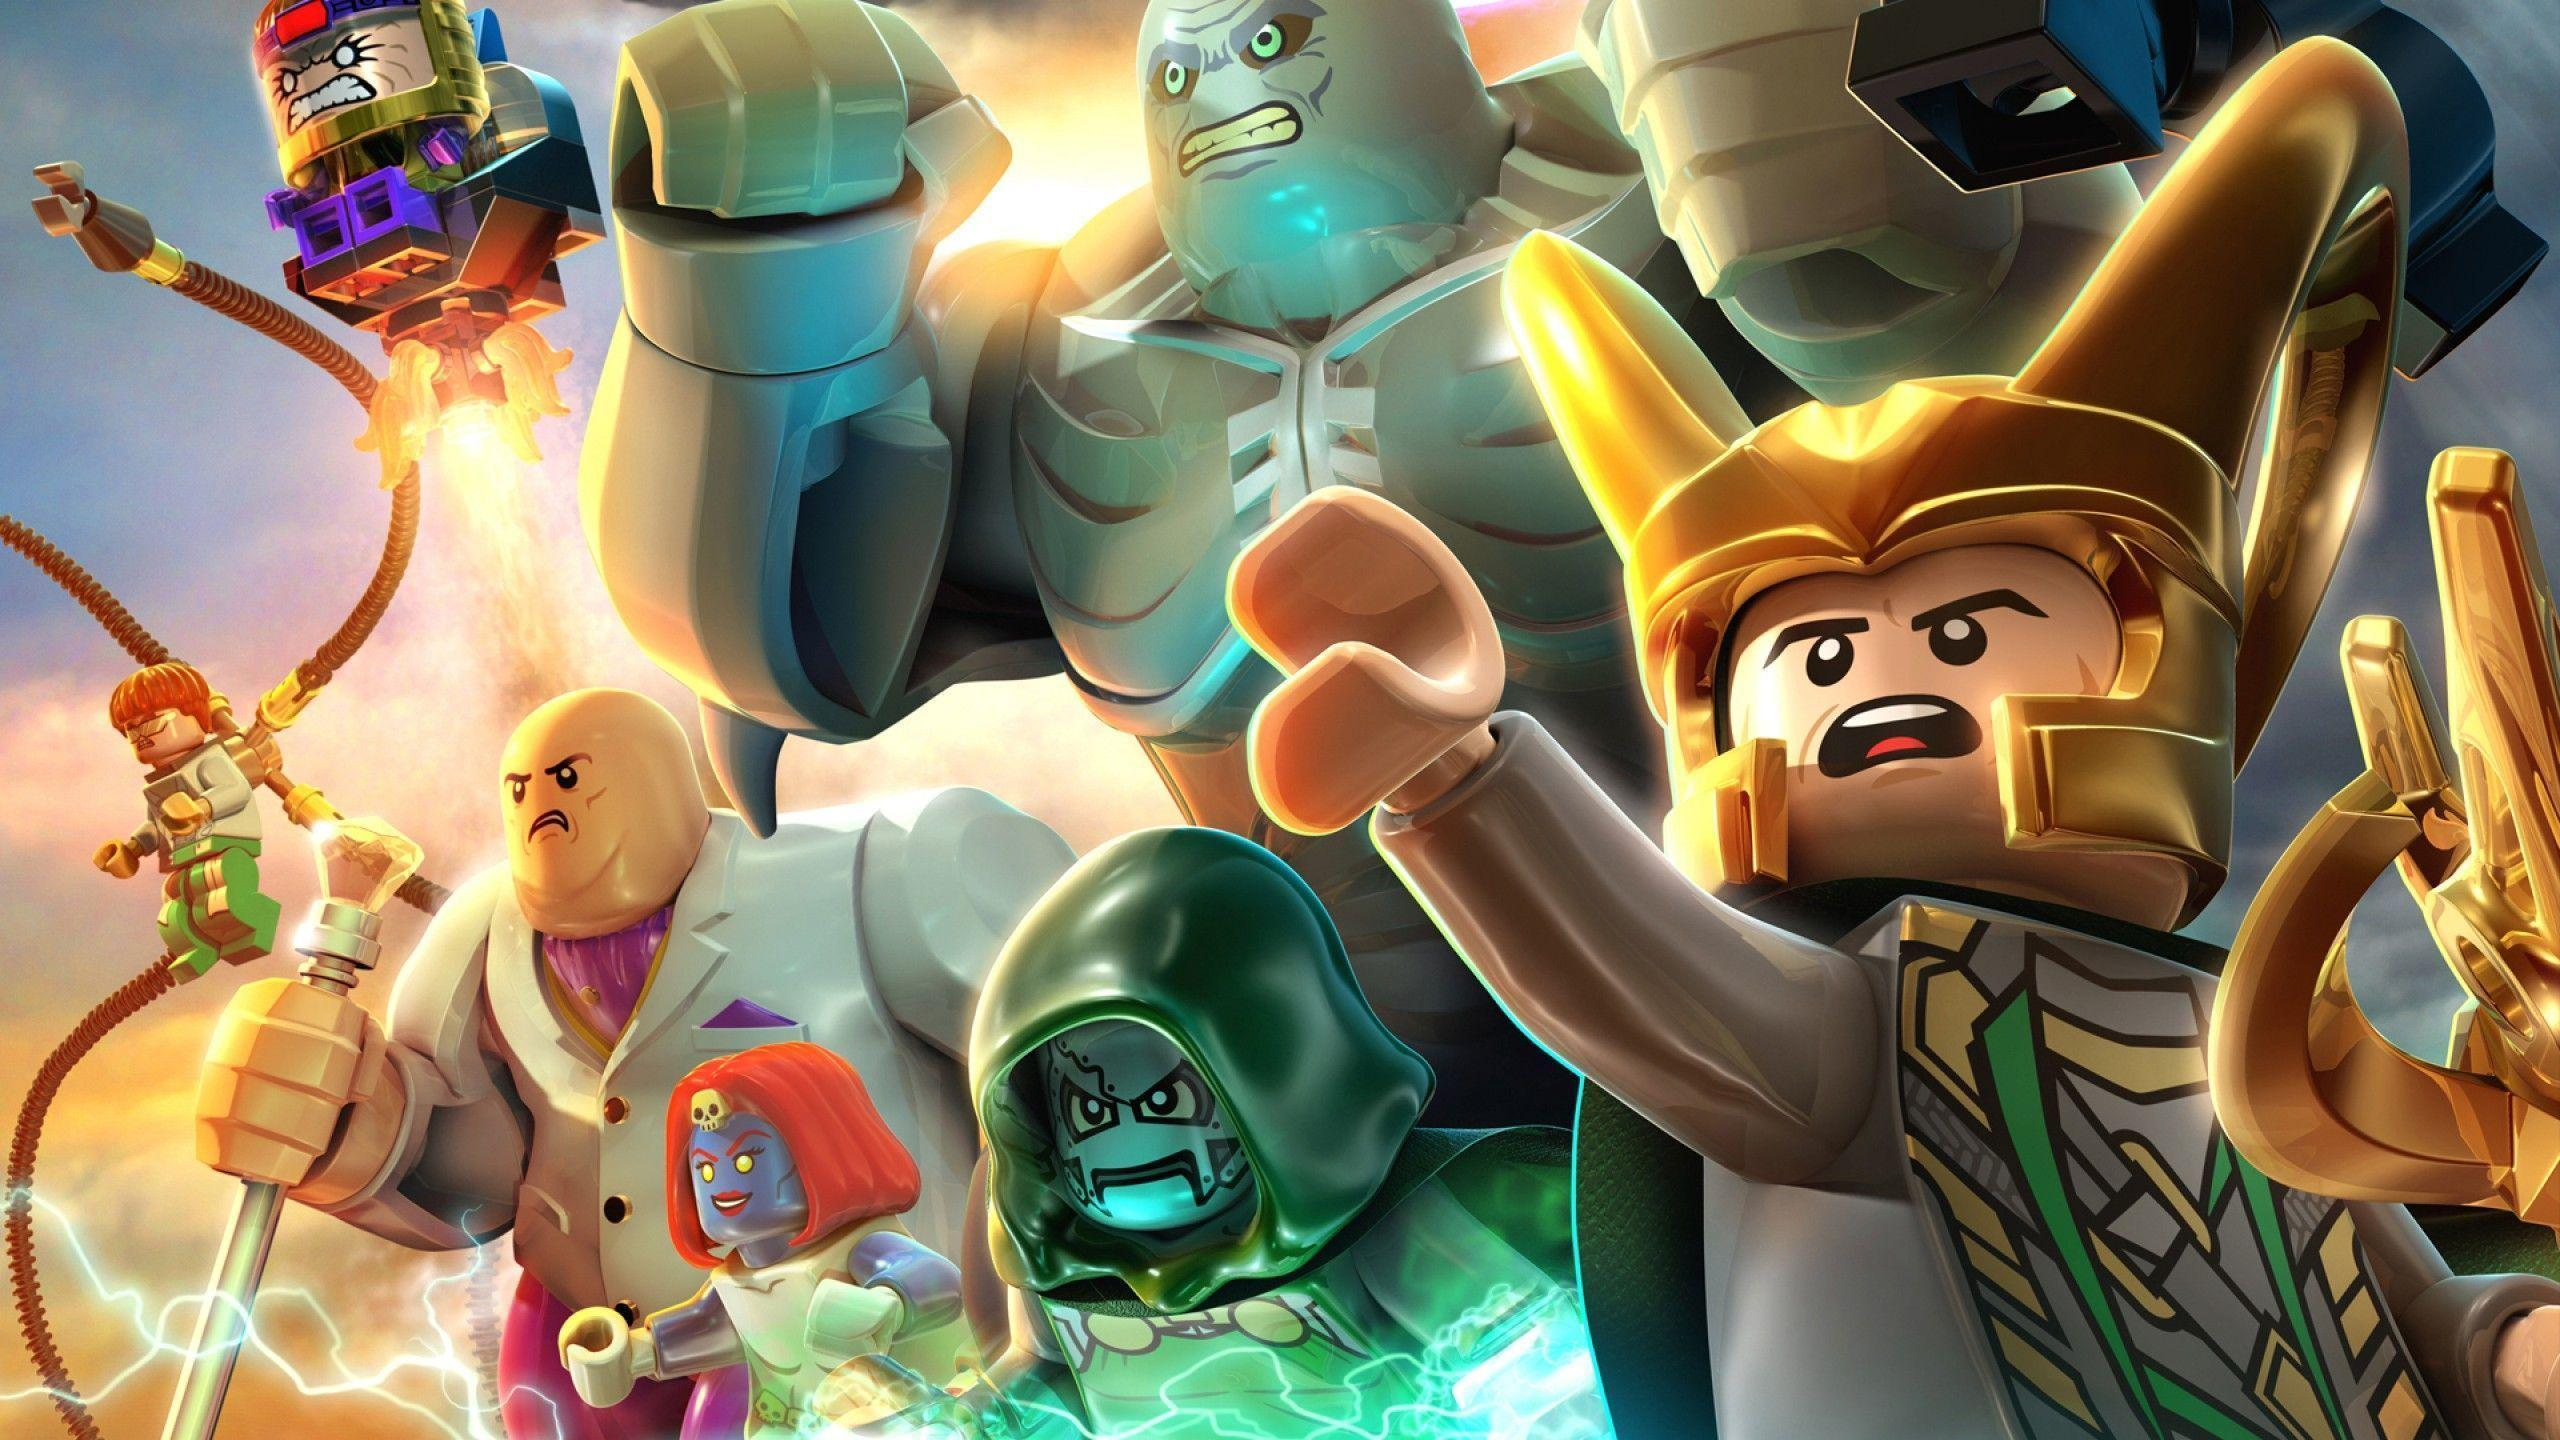 lego marvel wallpaper for desktop - photo #12